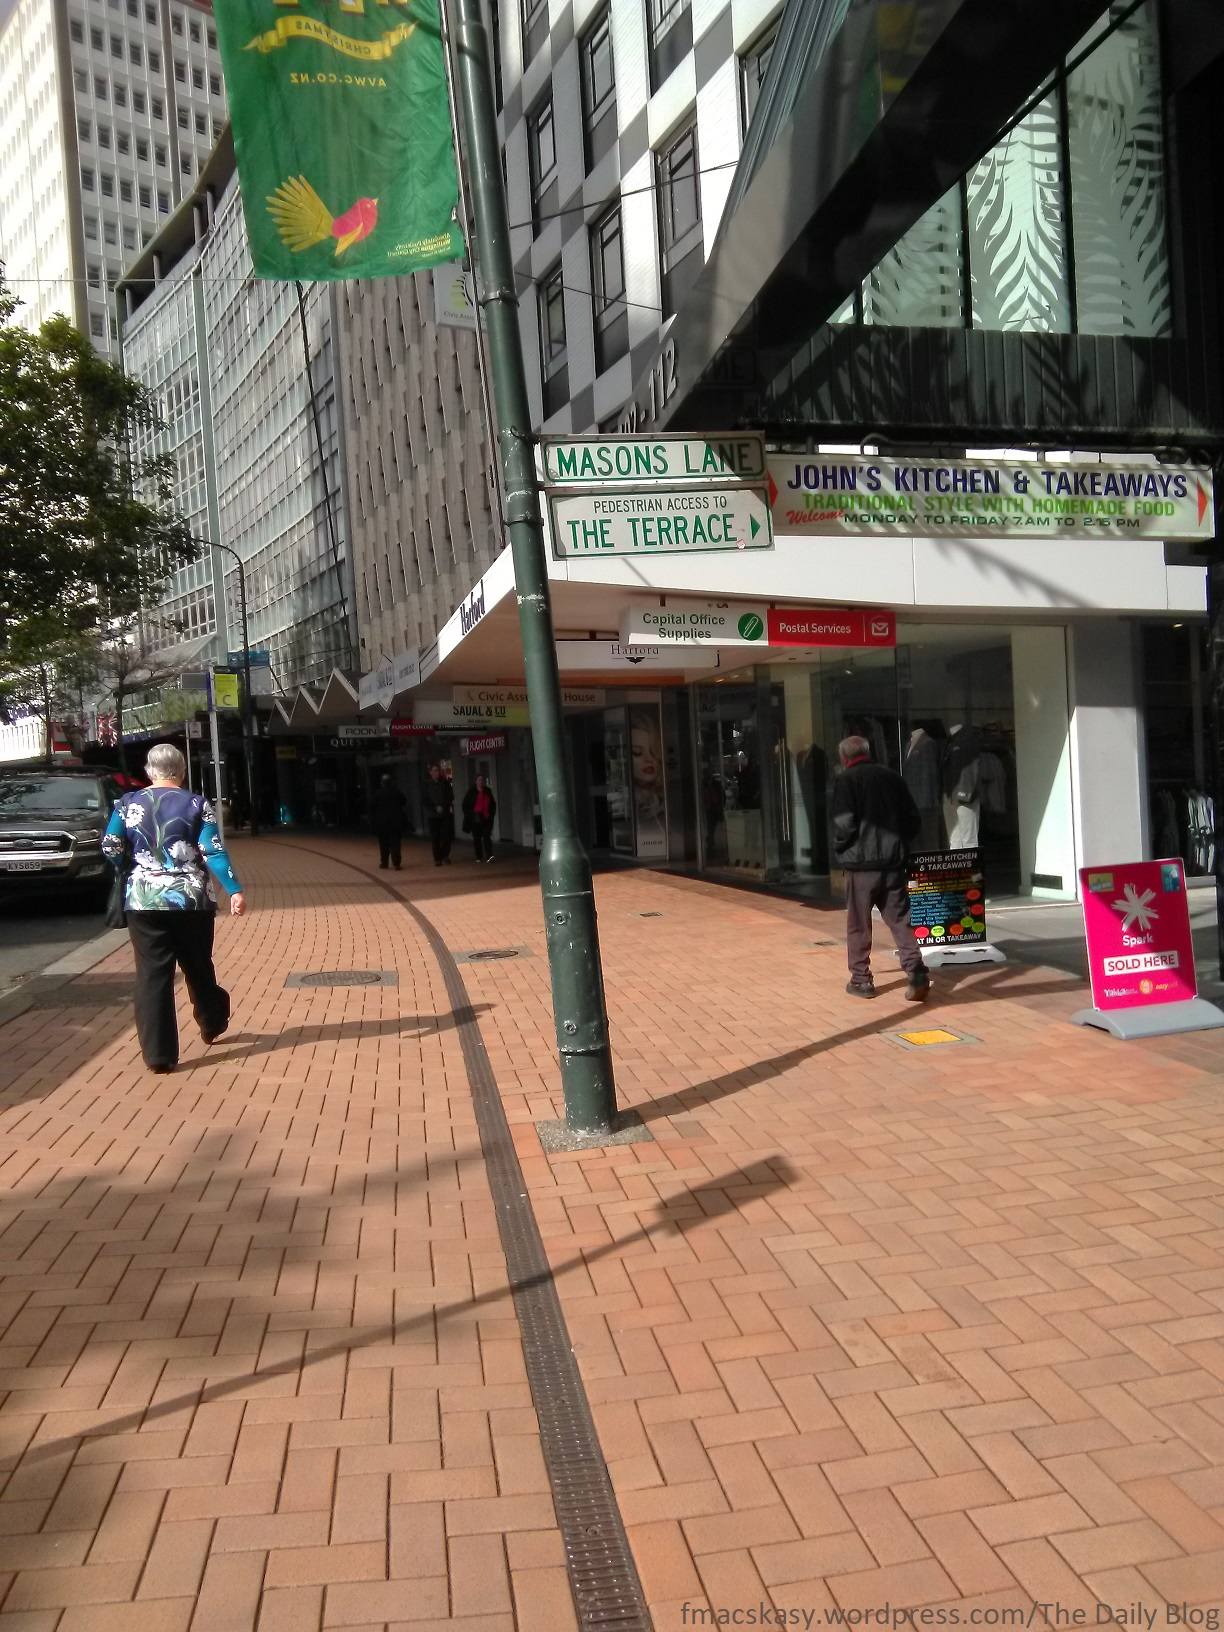 NZ Post – how to lose business and alienate people | The Daily Blog